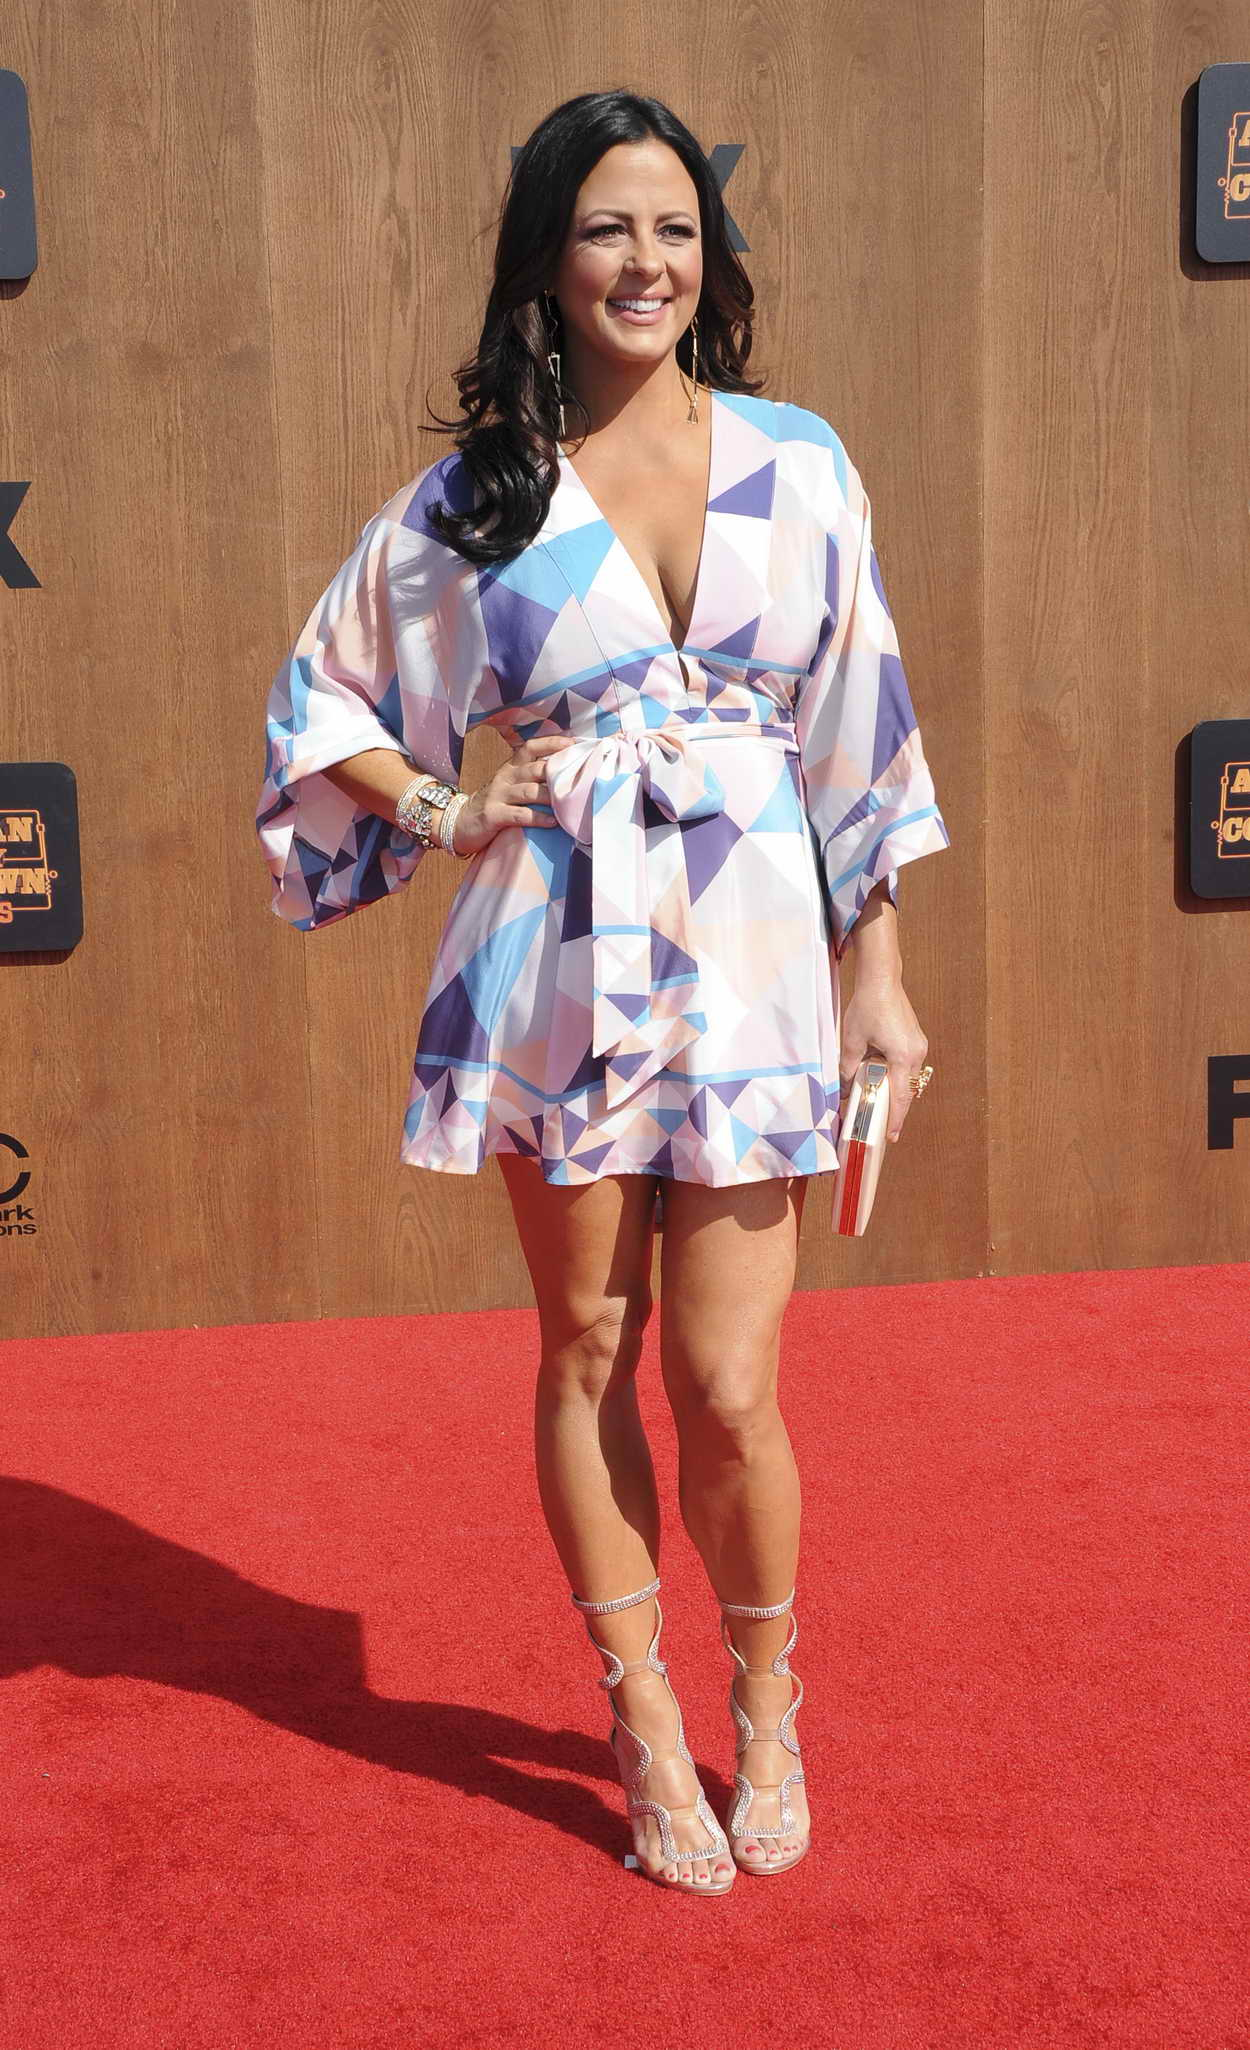 Sara Evans At The 2016 American Country Countdown Awards In LA 05 02 2016 Celebsla